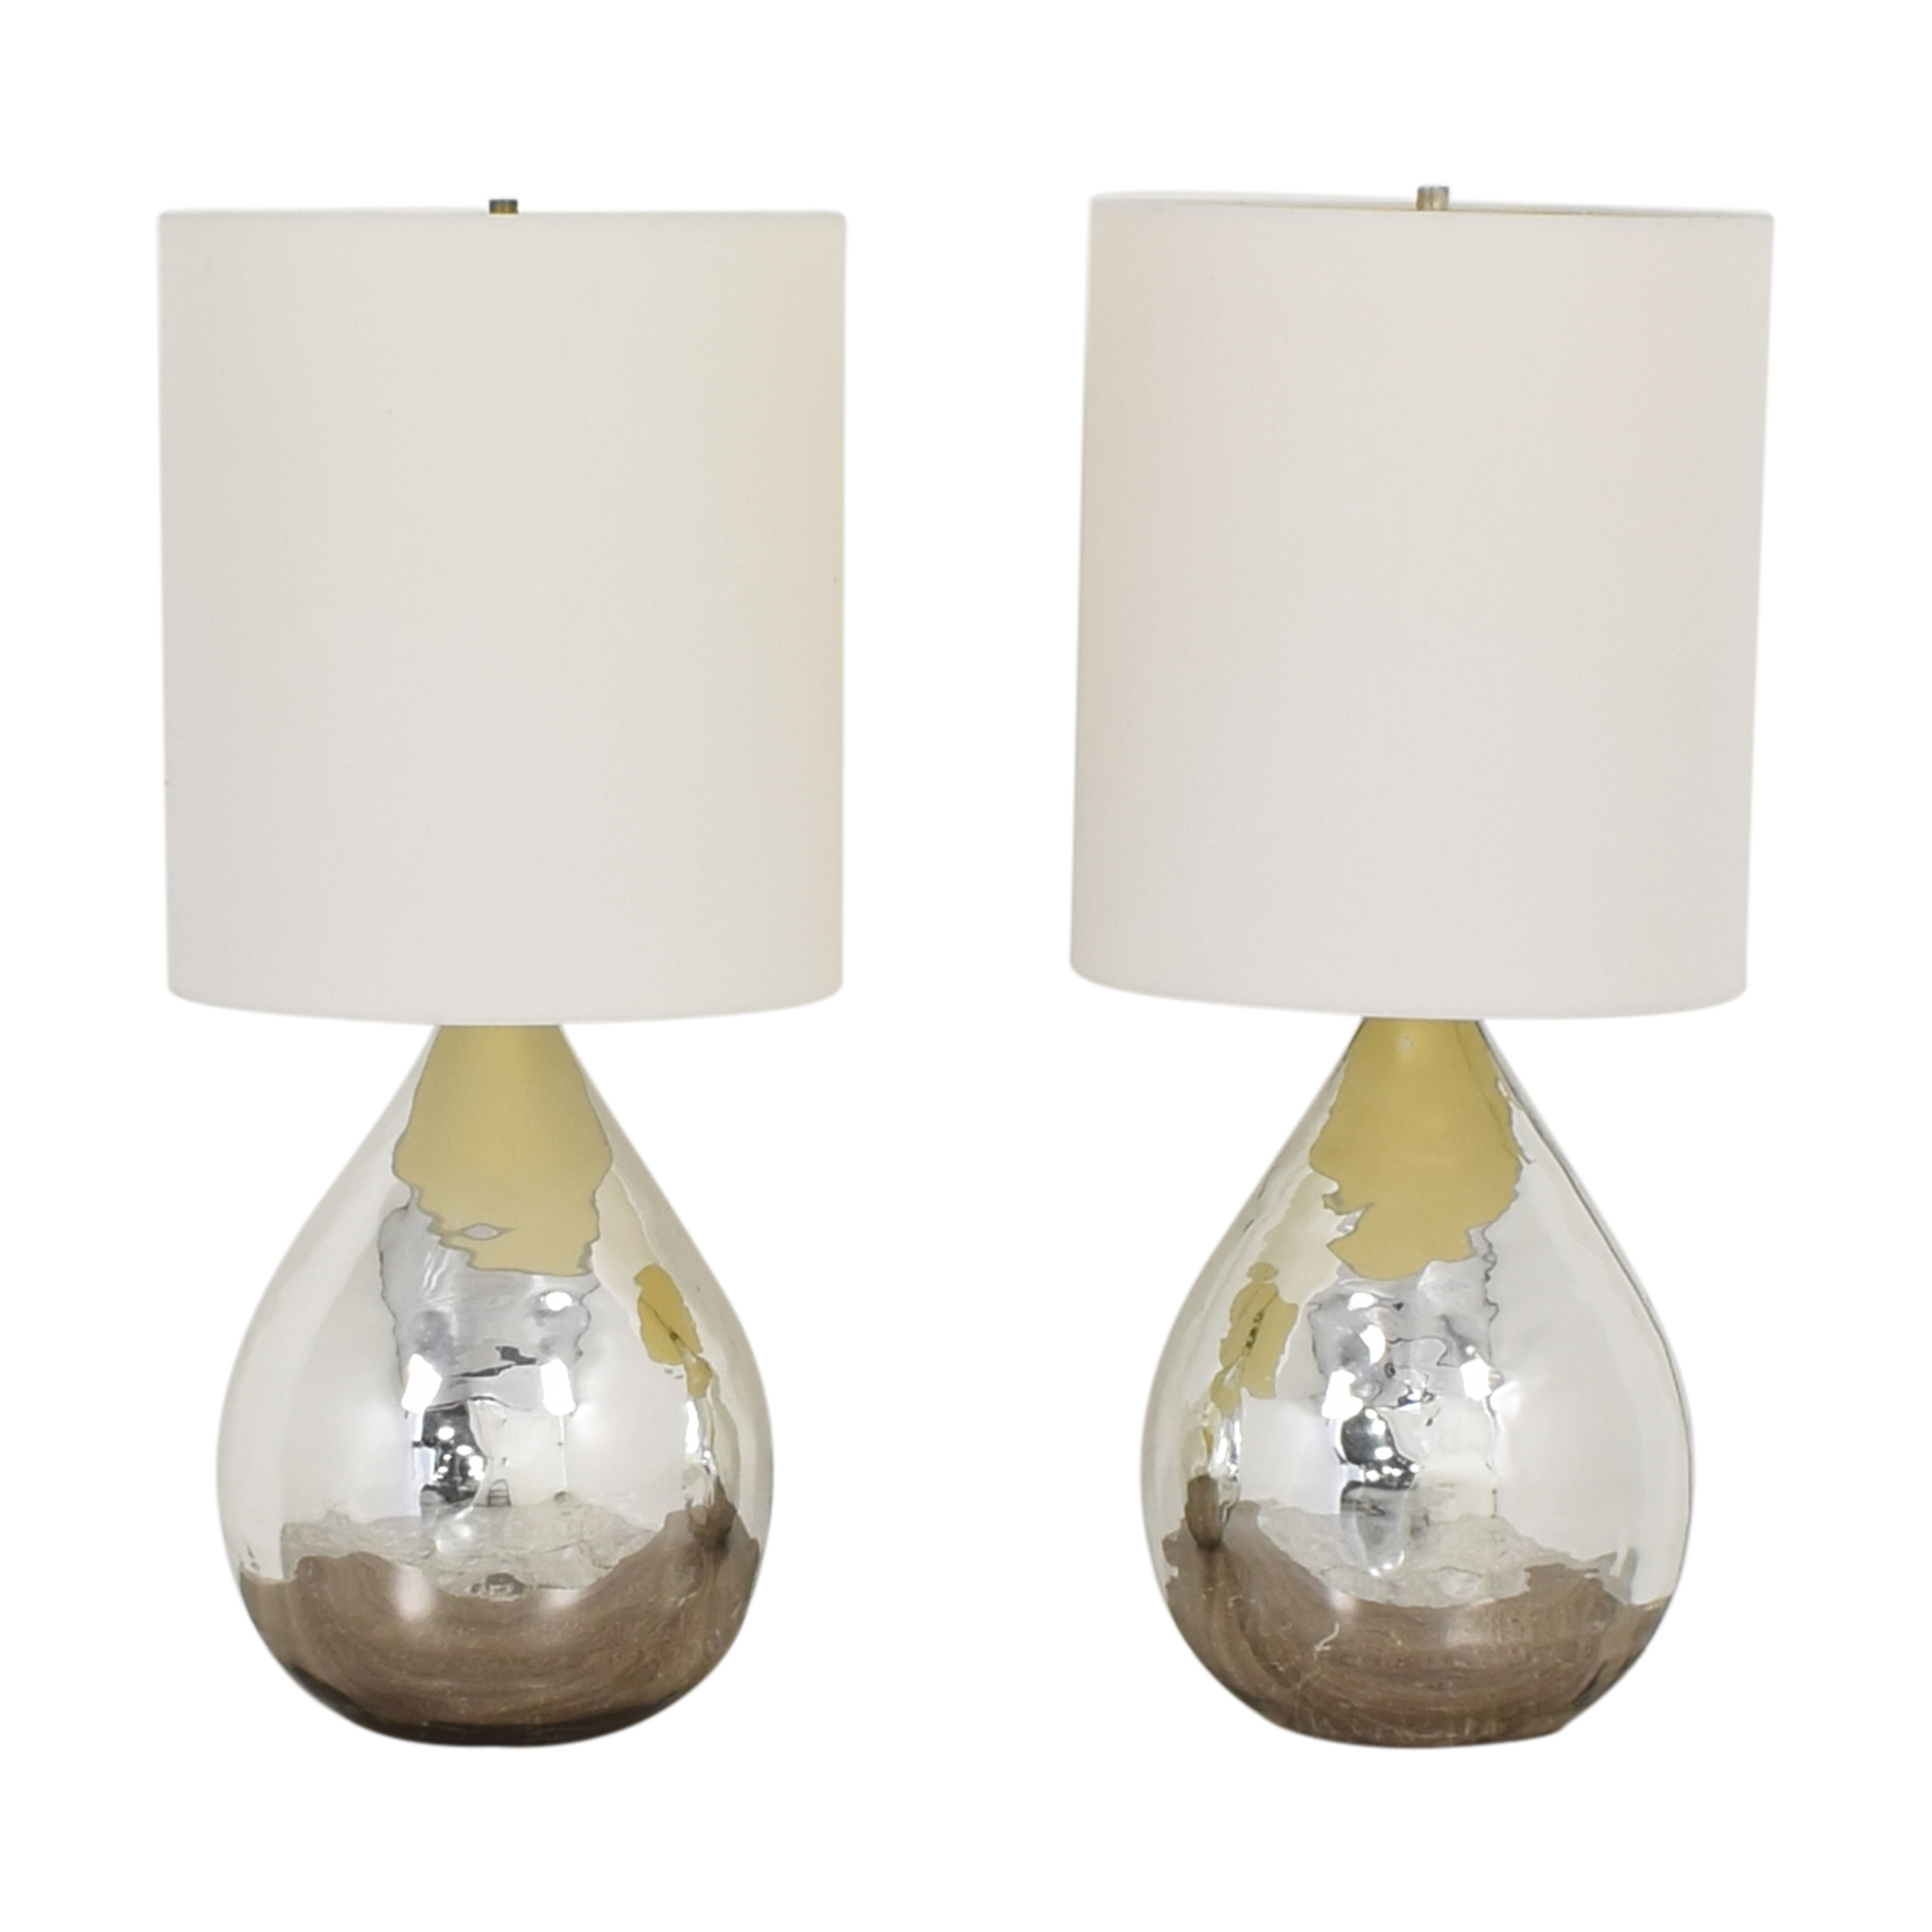 Pottery Barn Pottery Barn Mercury Glass Style Table Lamps discount